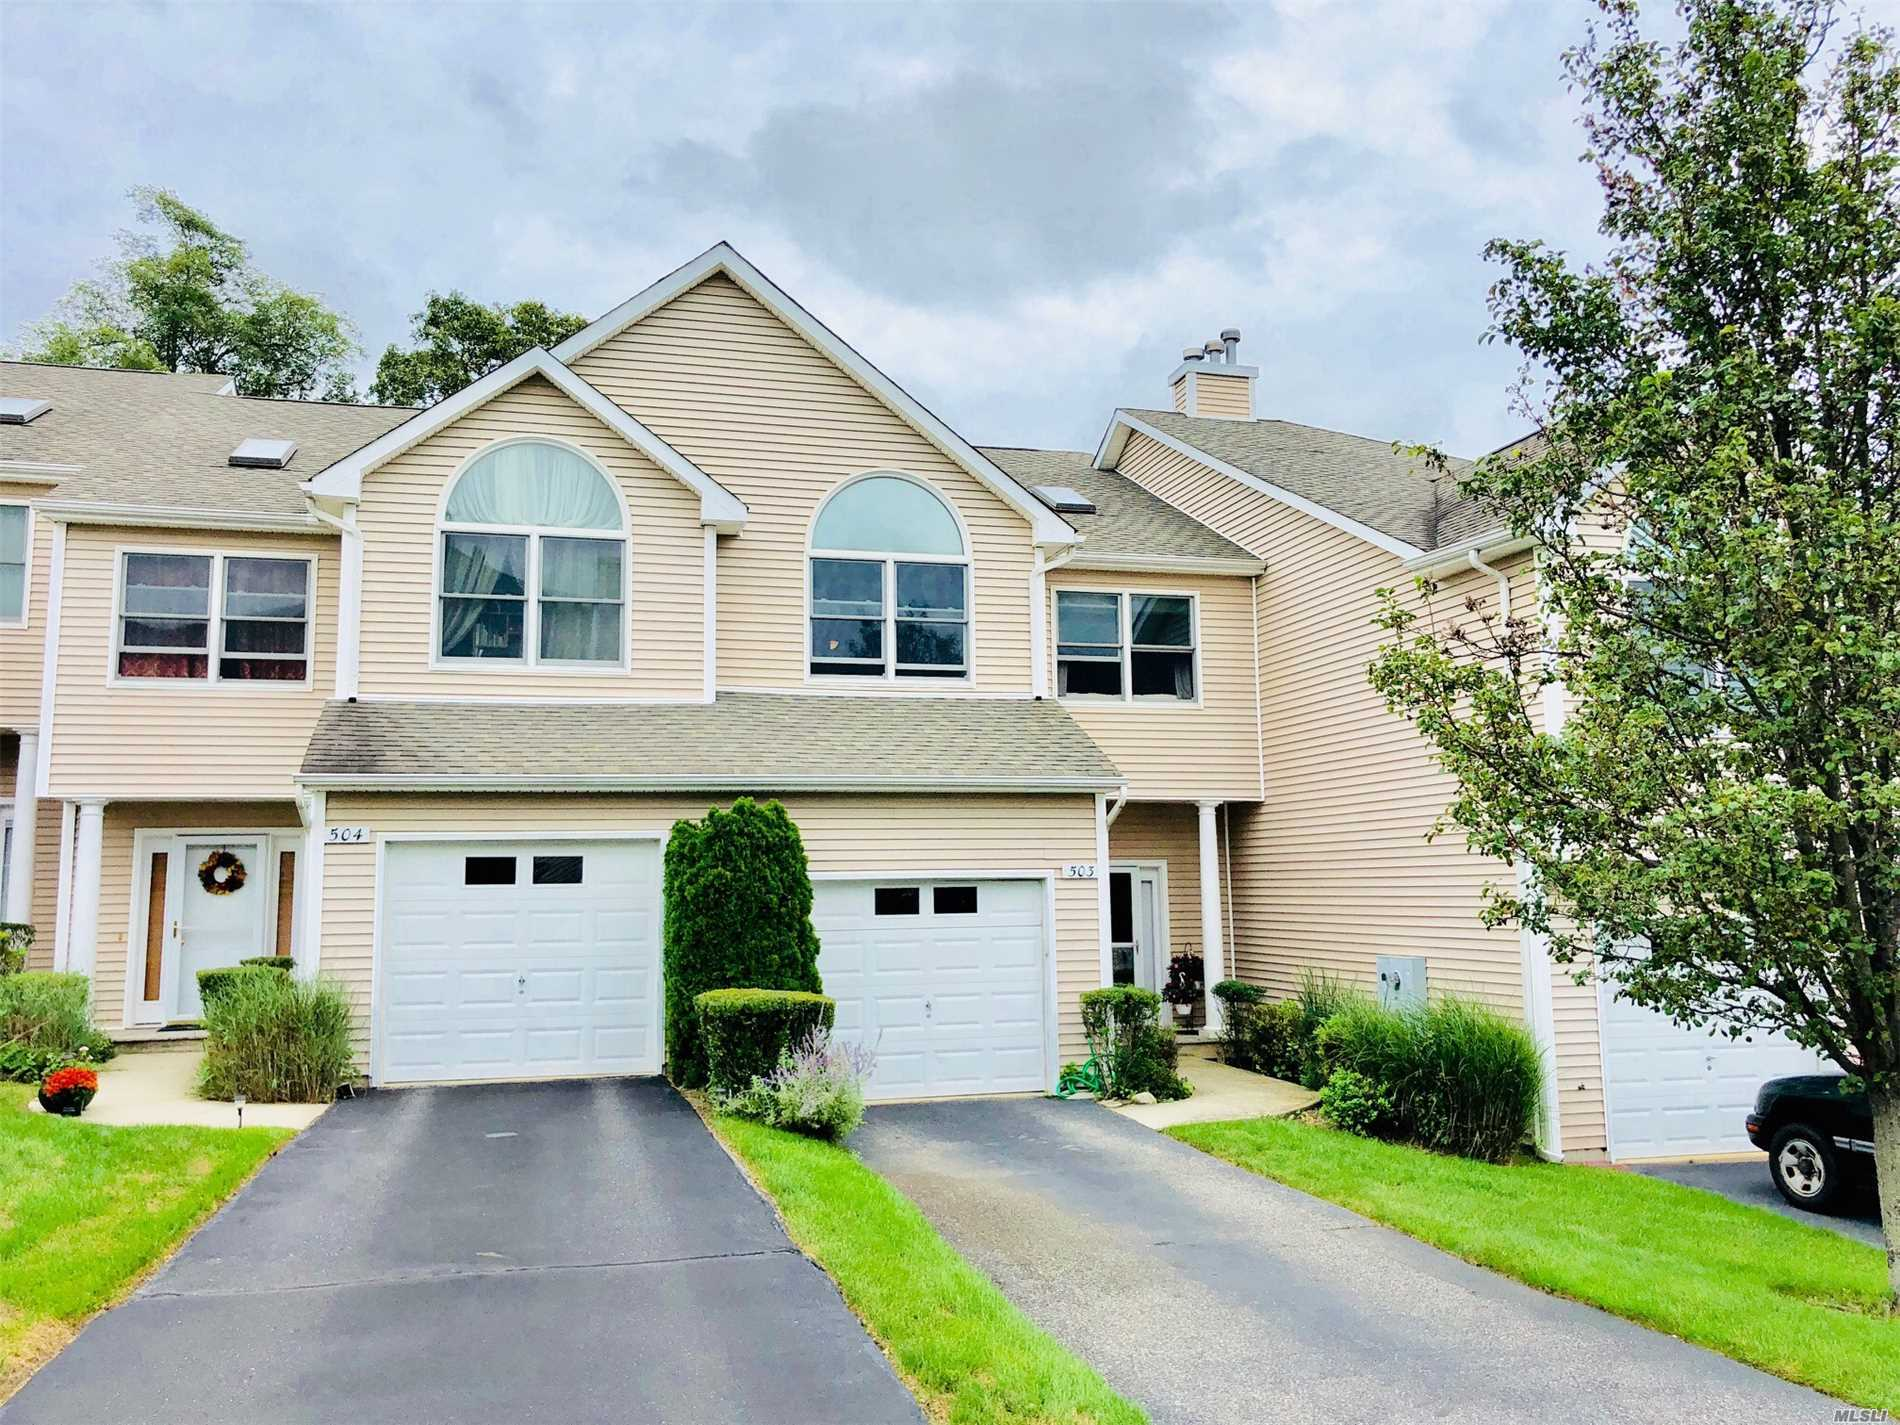 Property for sale at 503 Willow Pond Dr Dr, Riverhead,  NY 11901